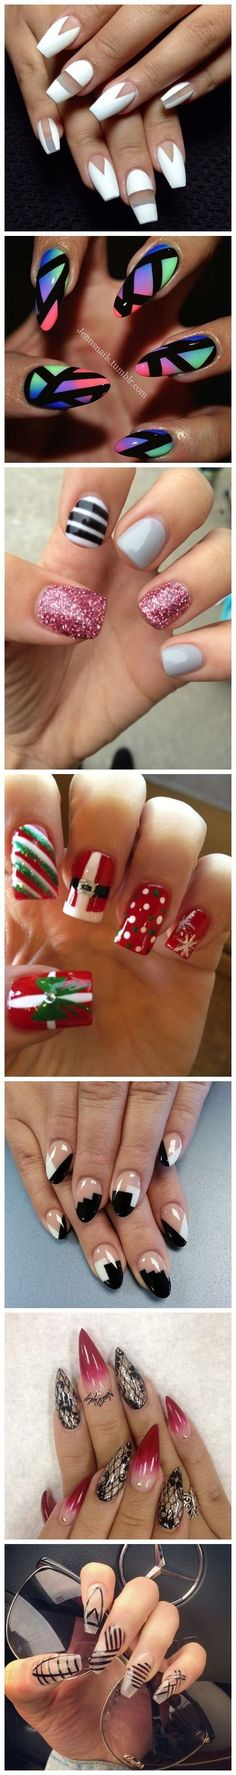 7 Cute & Easy Fall Nail Art Designs, Ideas, Trends & Stickers 2015 | Fashionte